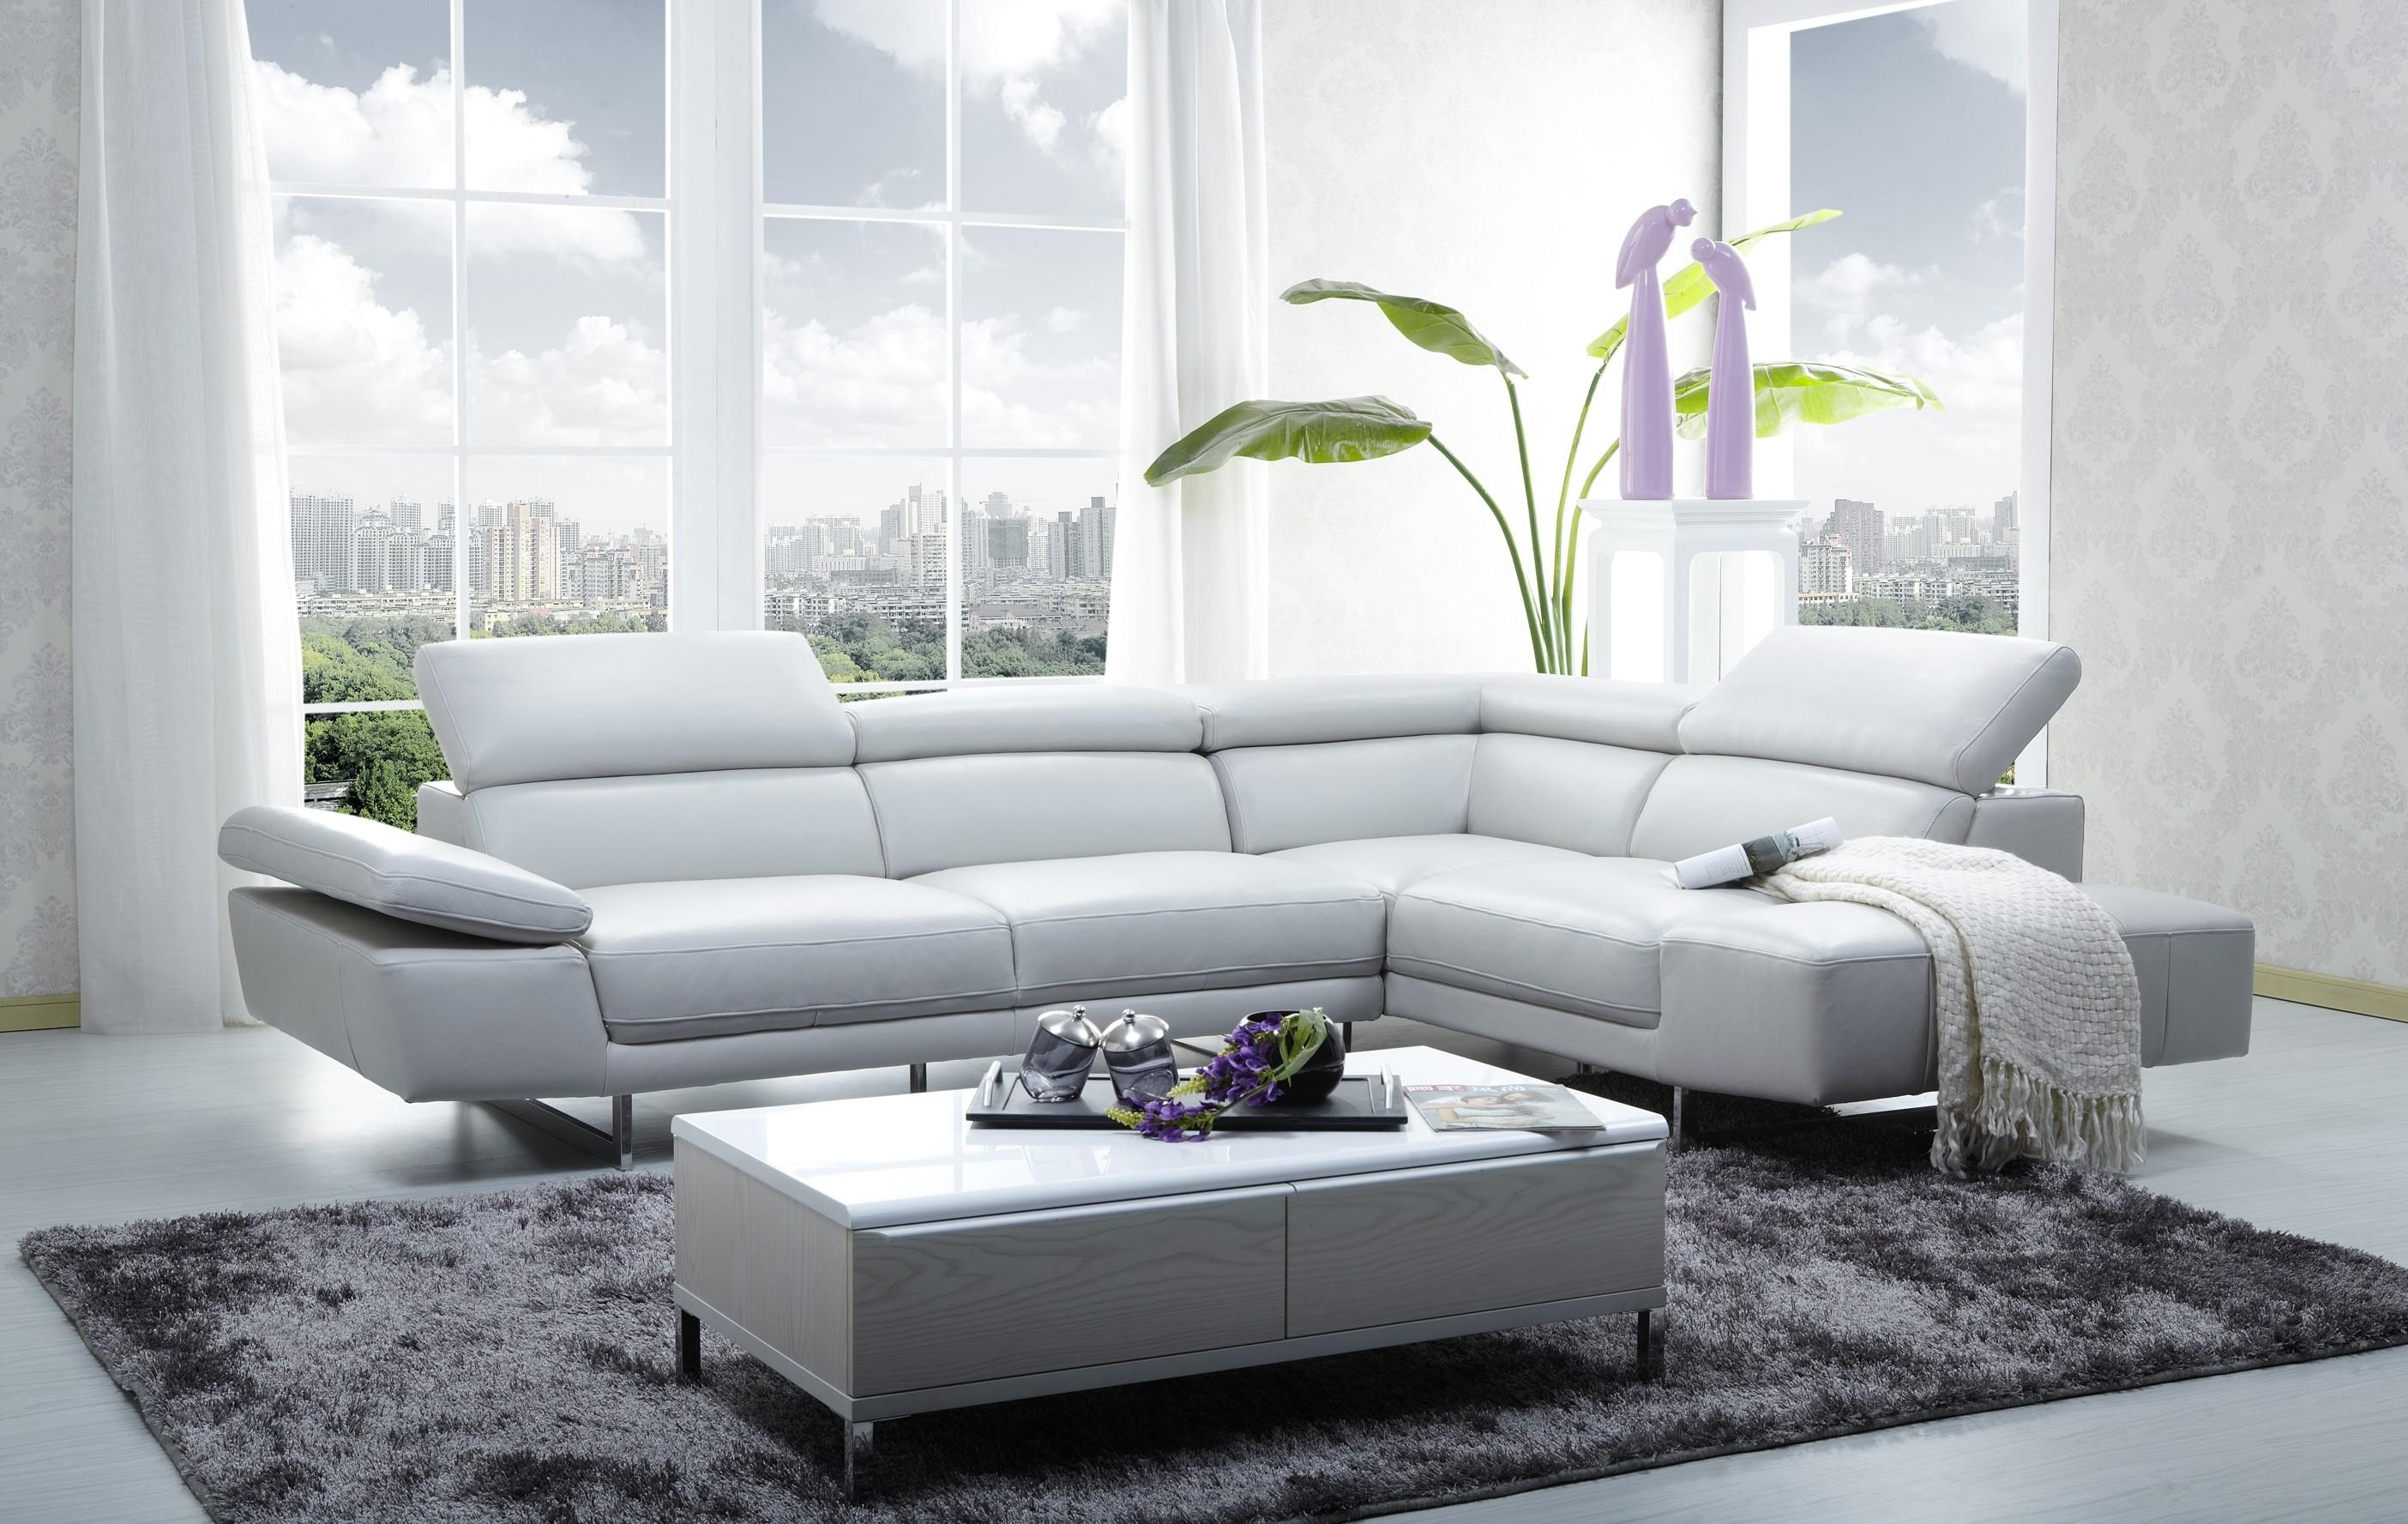 Modern Sofa Slipcovers Sofas And Loveseats White | Deseosol Inside Modern Sofas (View 18 of 20)